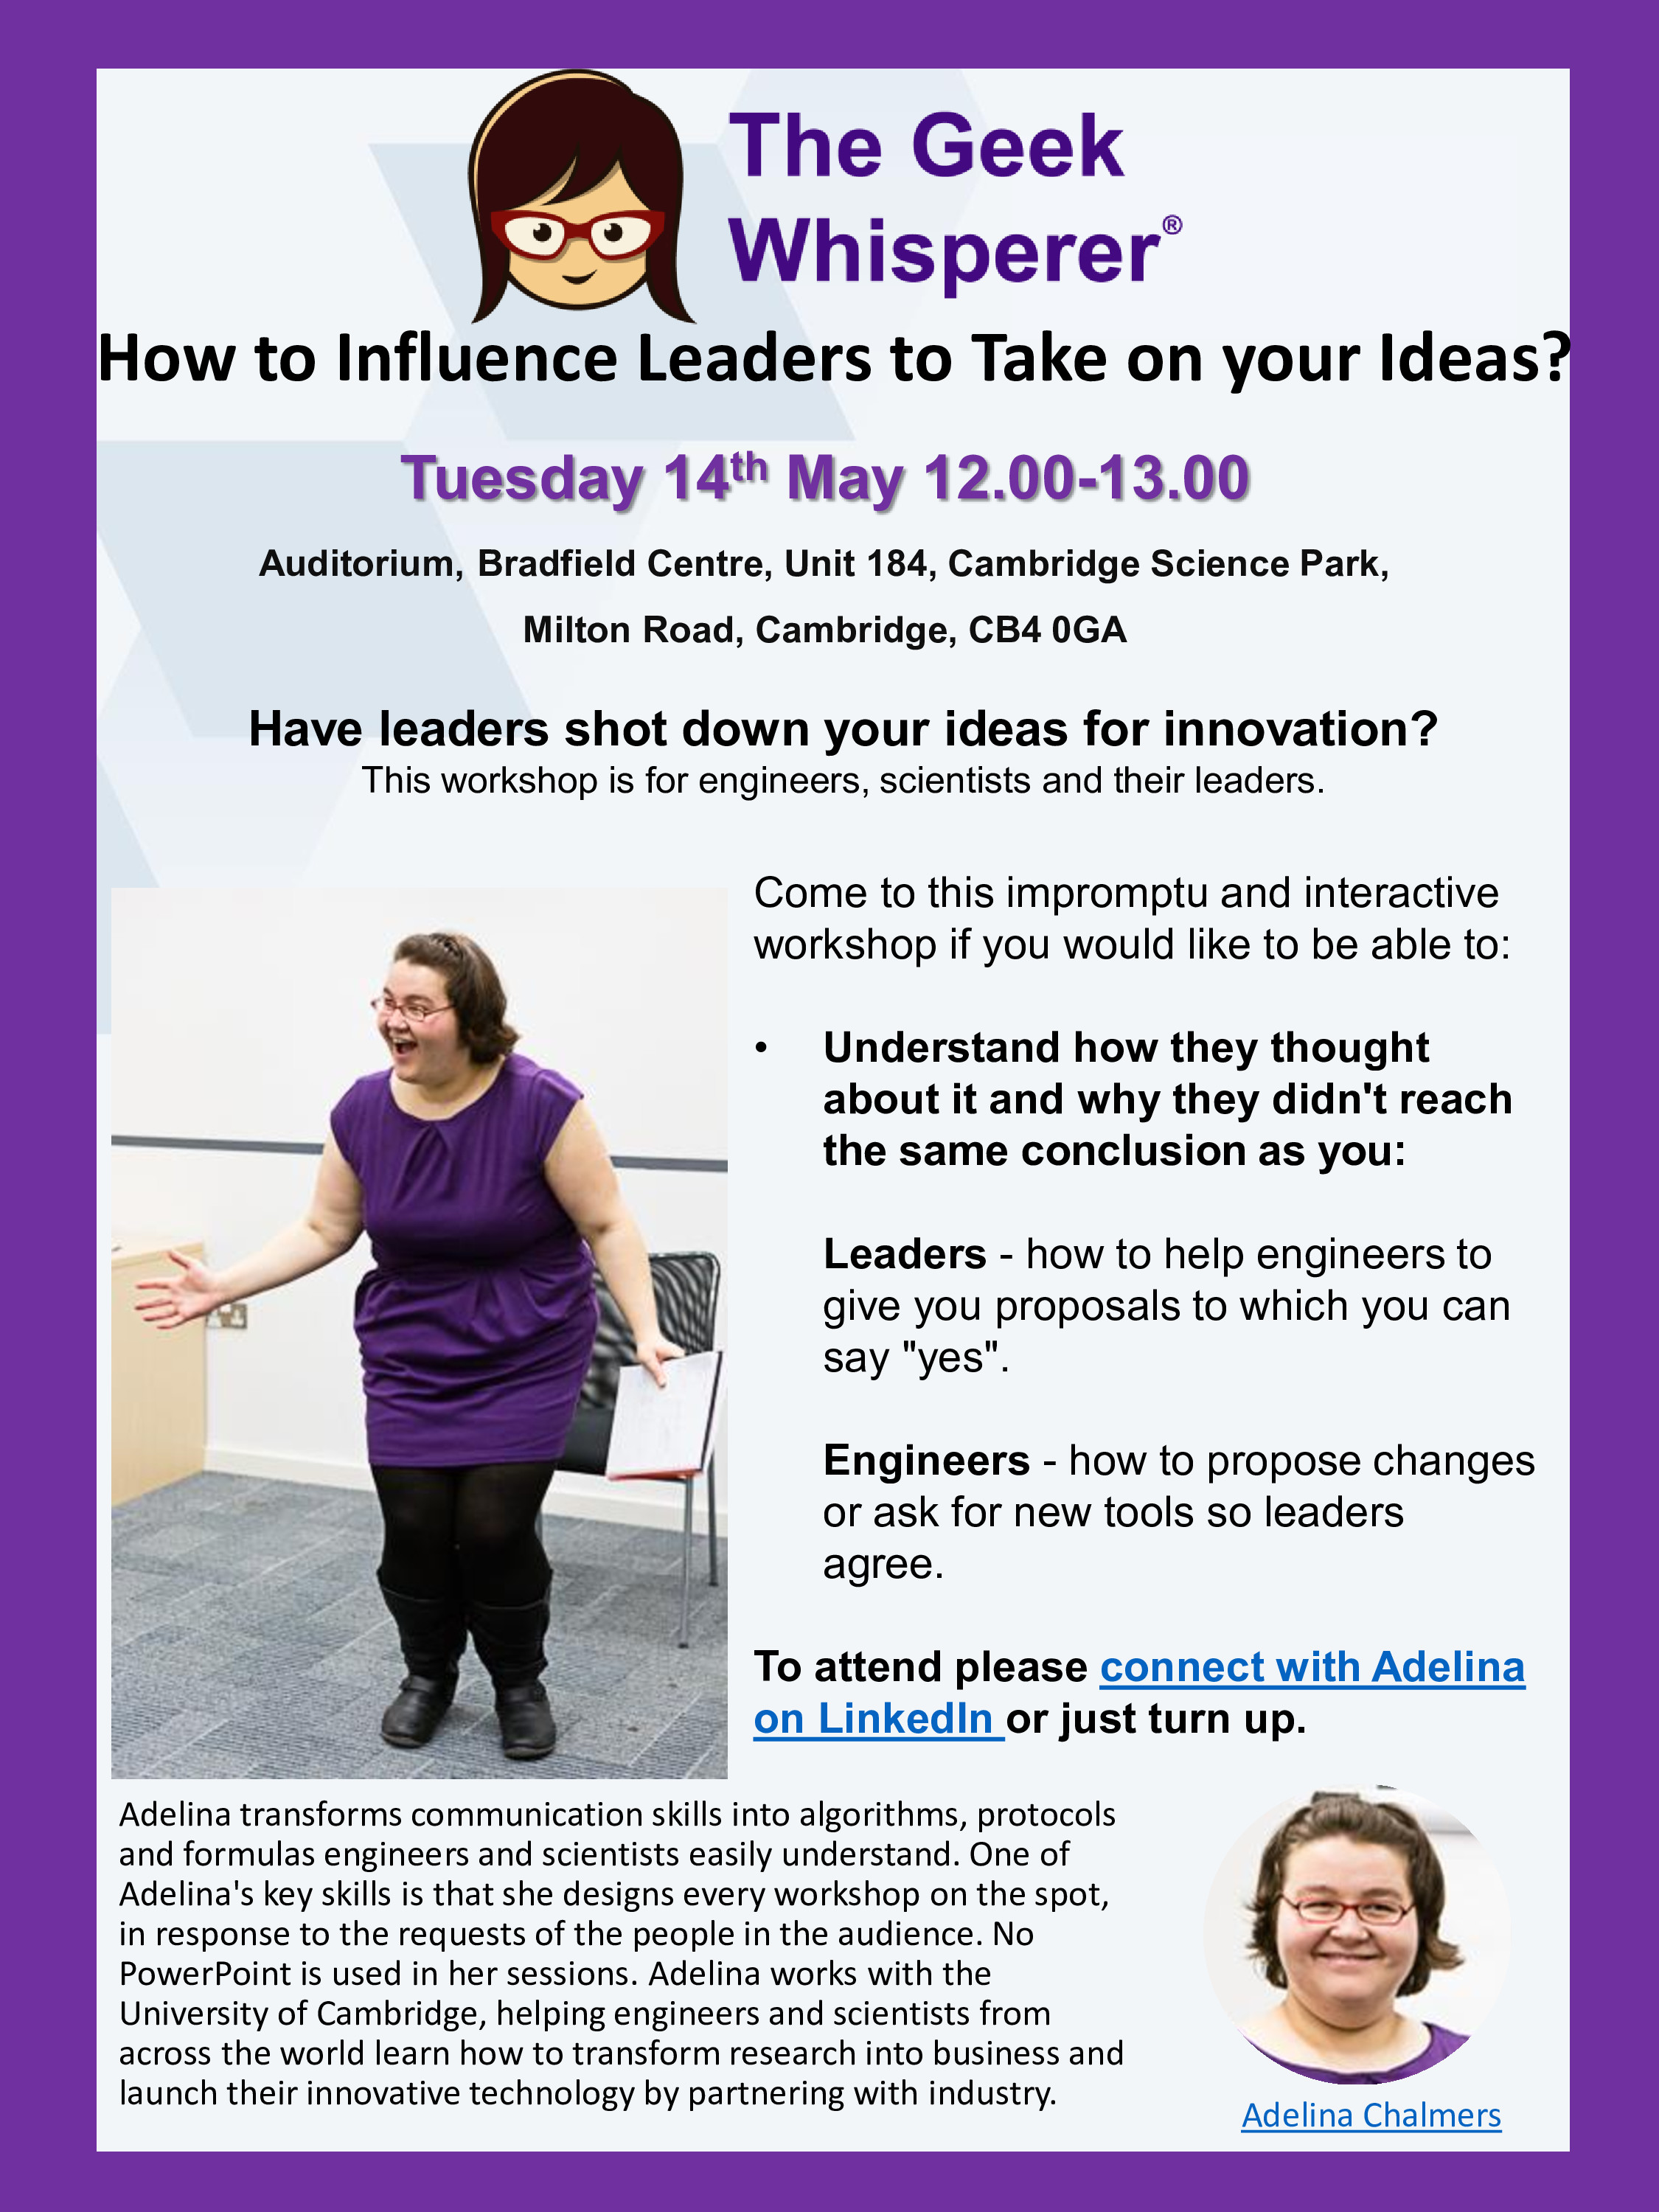 Leaflet - how to influence